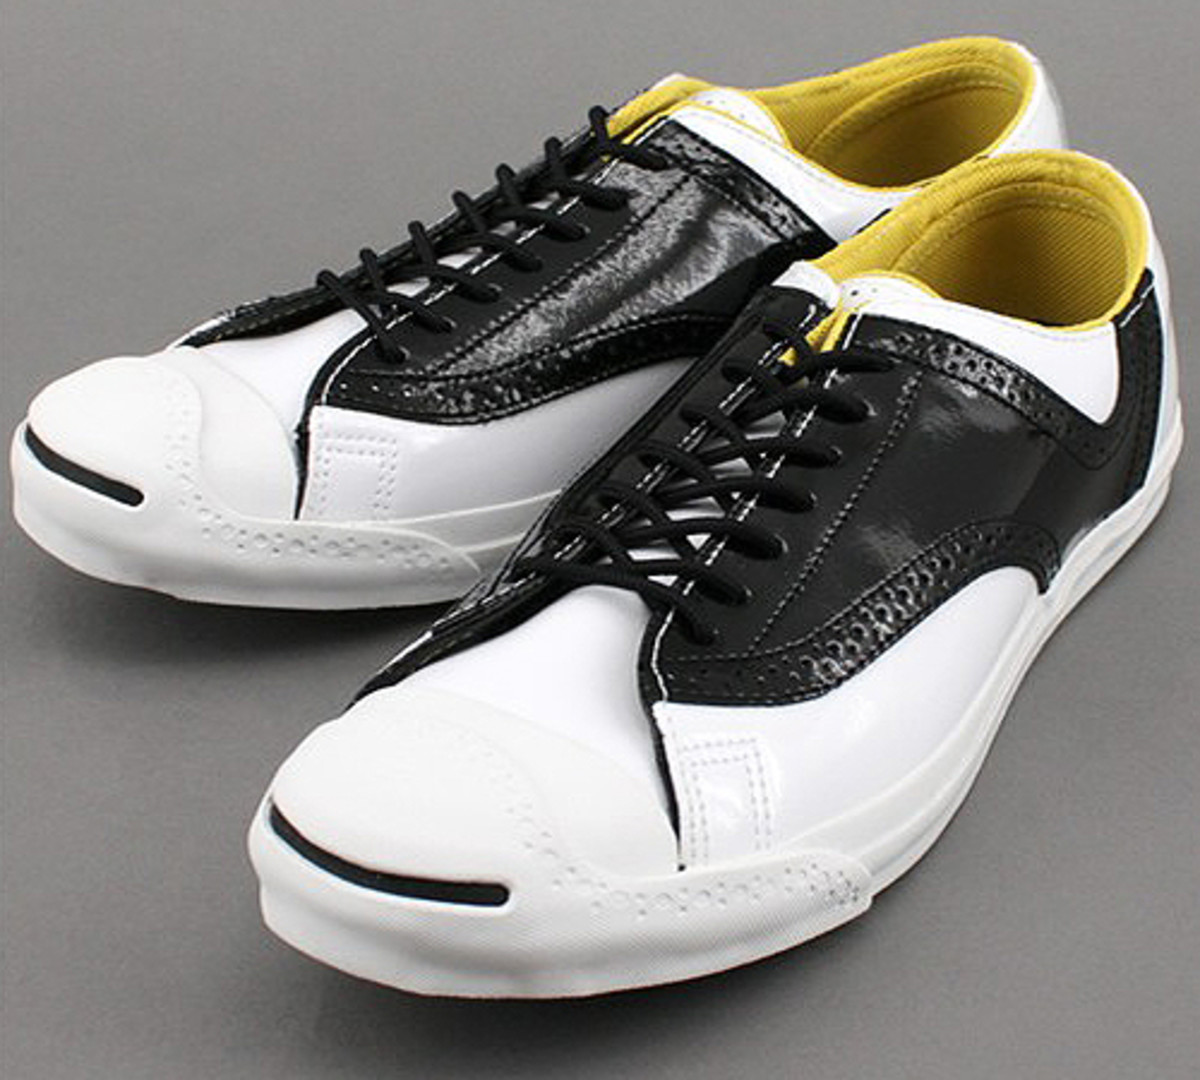 converse-dress-code-jack-purcell-s-mdln-011